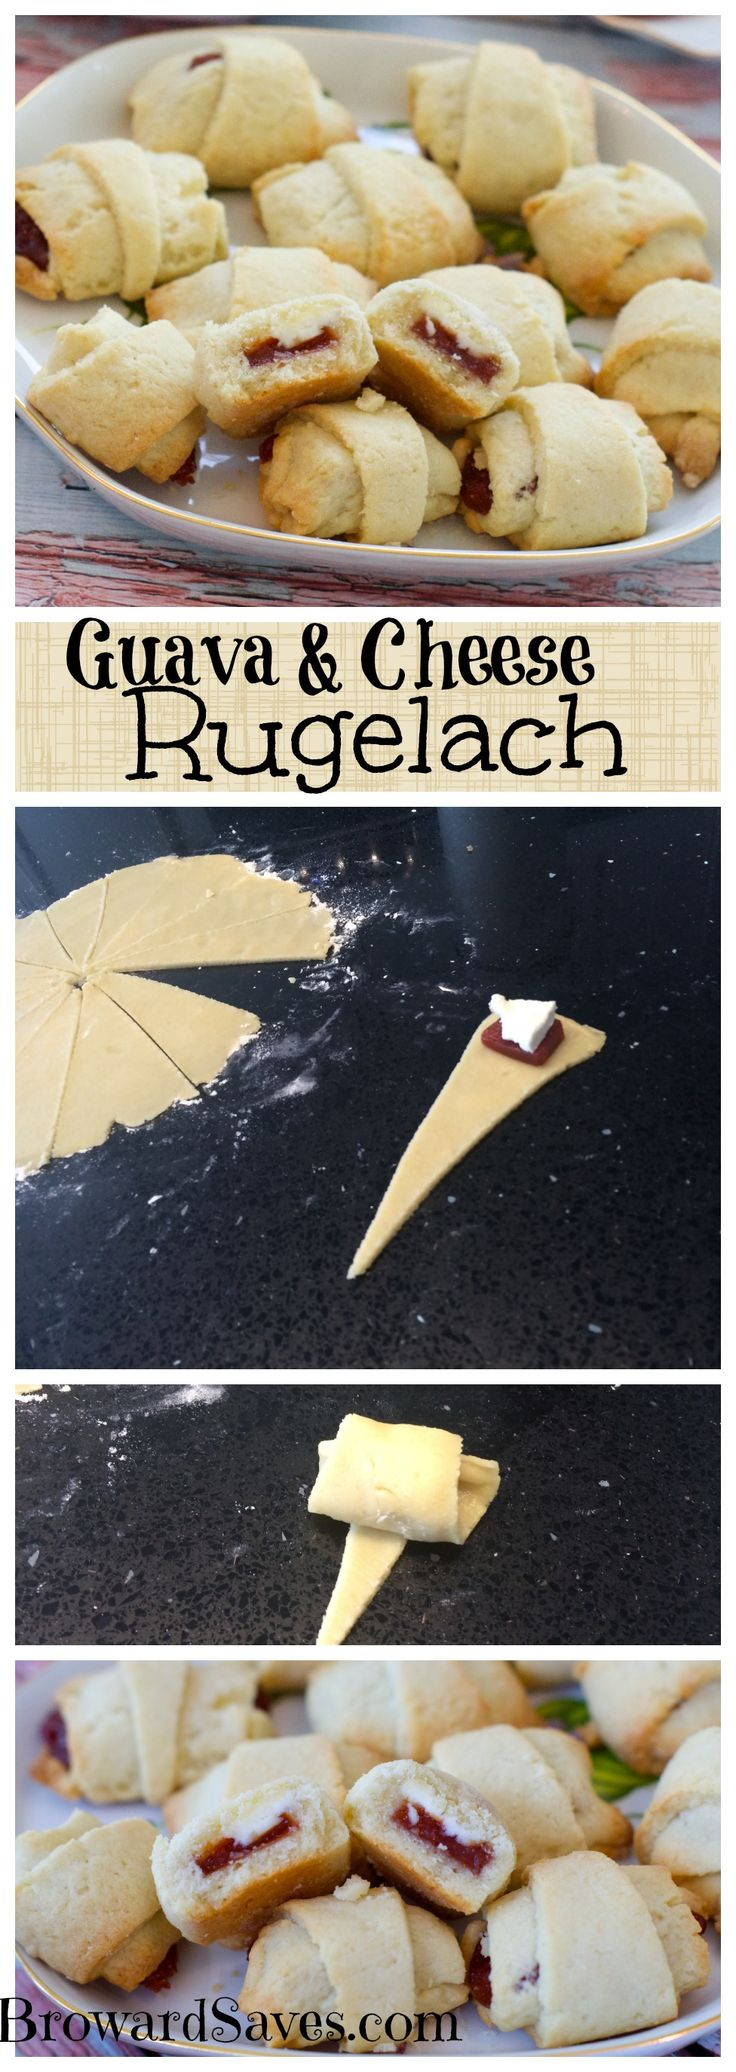 Delicious And Easy To Make Guava & Cream Cheese Rugelach! A Hit With Kids  And